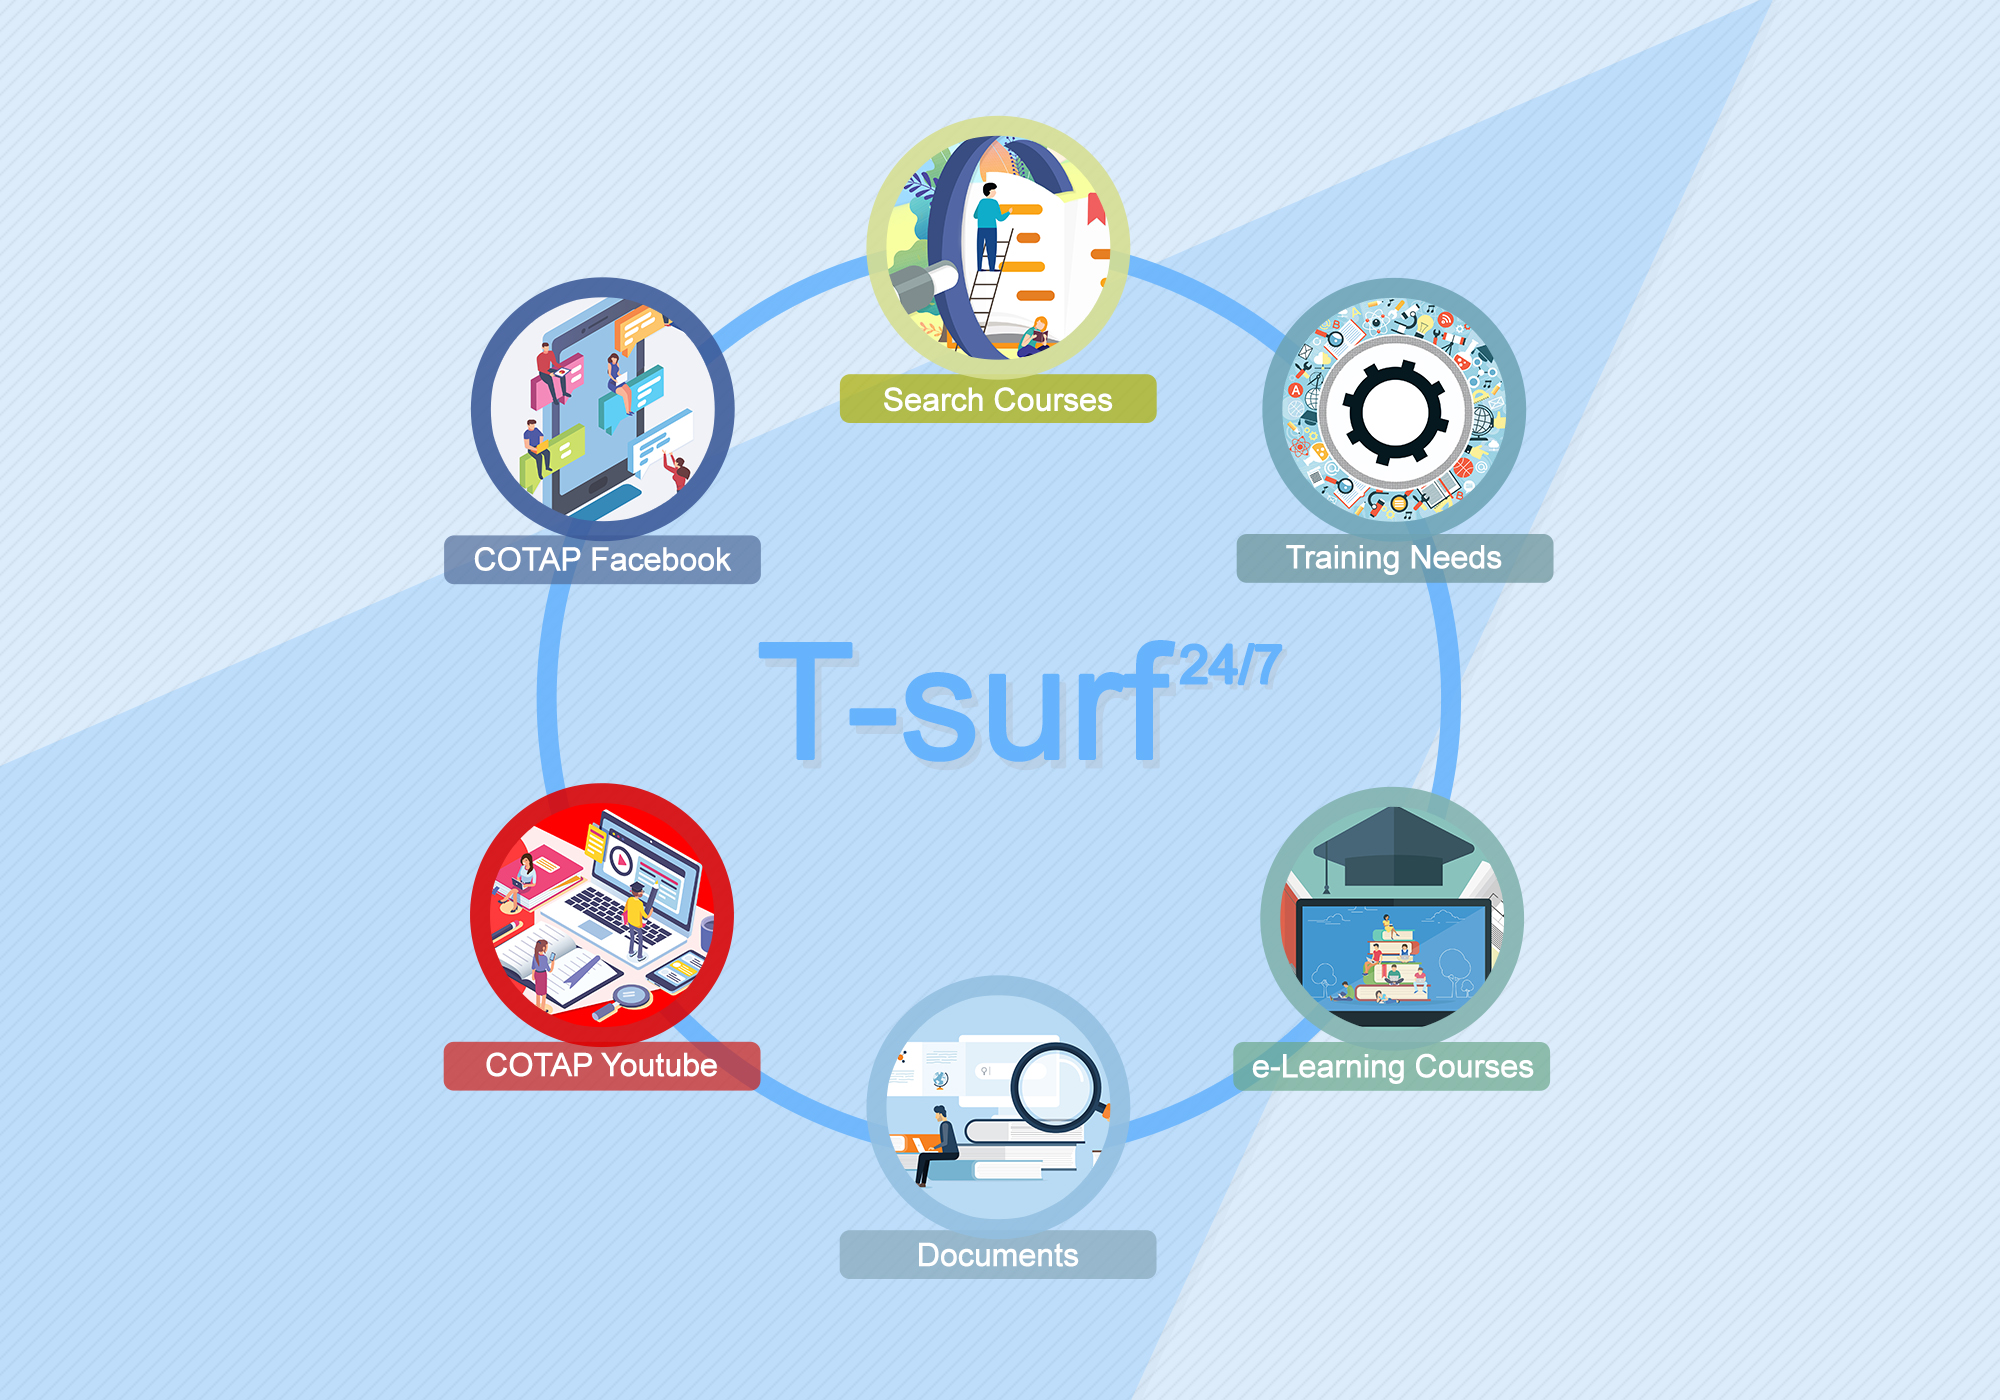 T-surf provided six features, including search couress, training needs, e-Learning courses, documents, COTAP YouTube and COTAP Facebook.